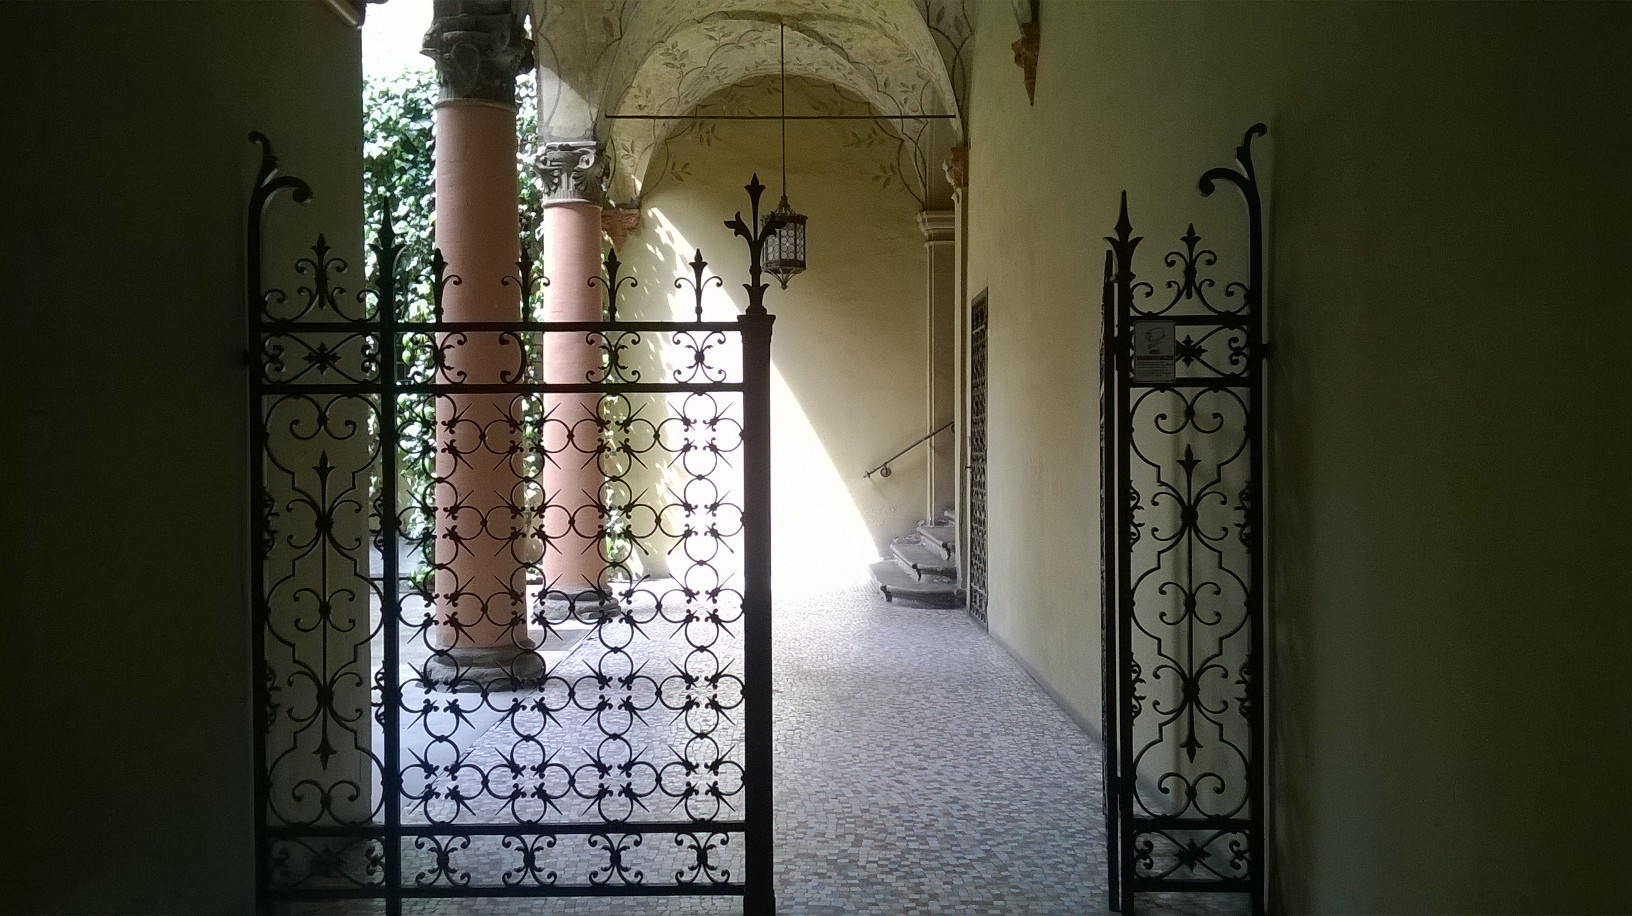 Bologna center - For Rent - Apartment